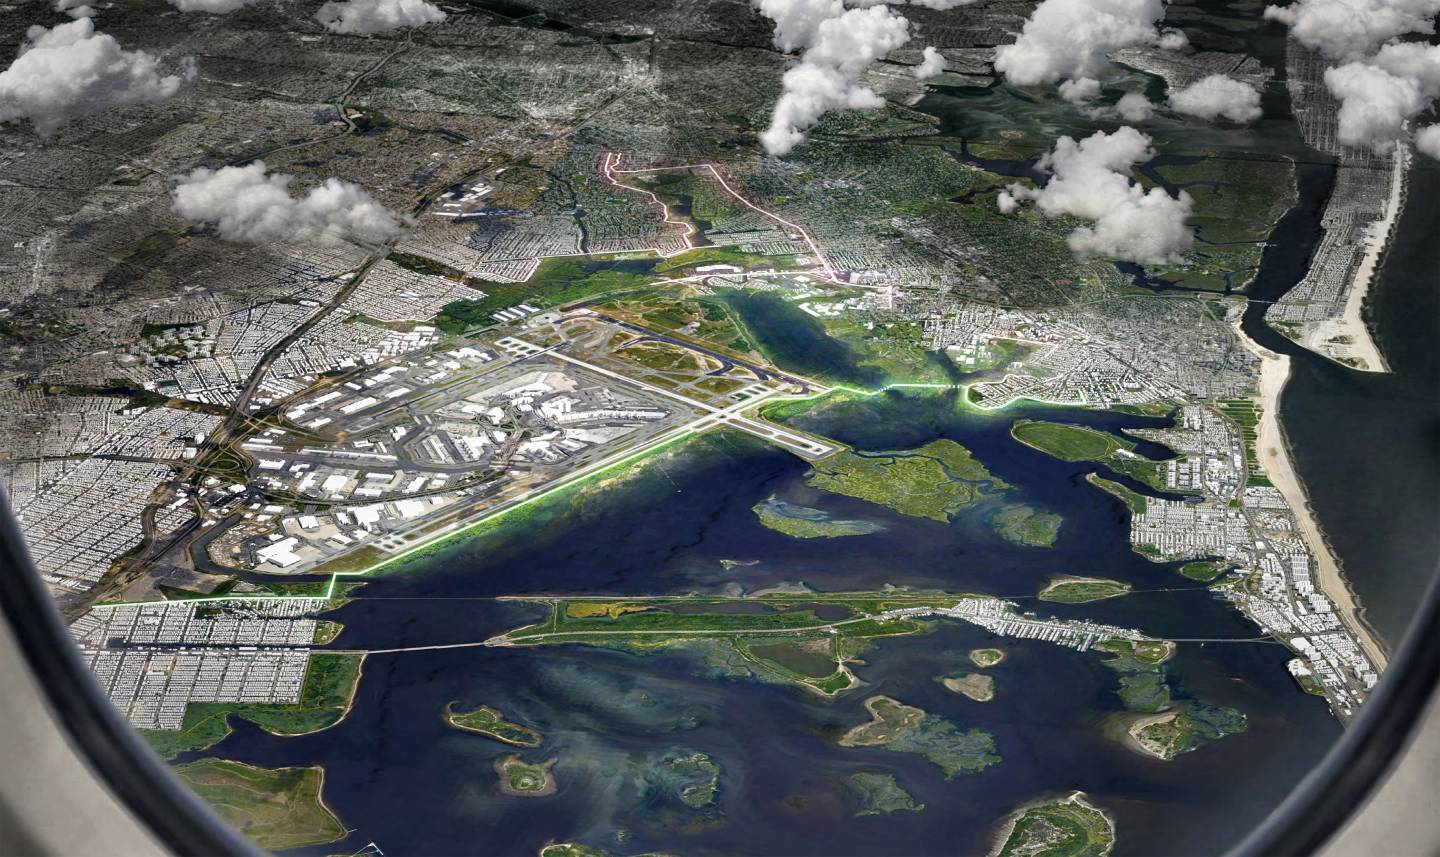 Princeton collaborators bring layered approach to coastal resiliency in New York City